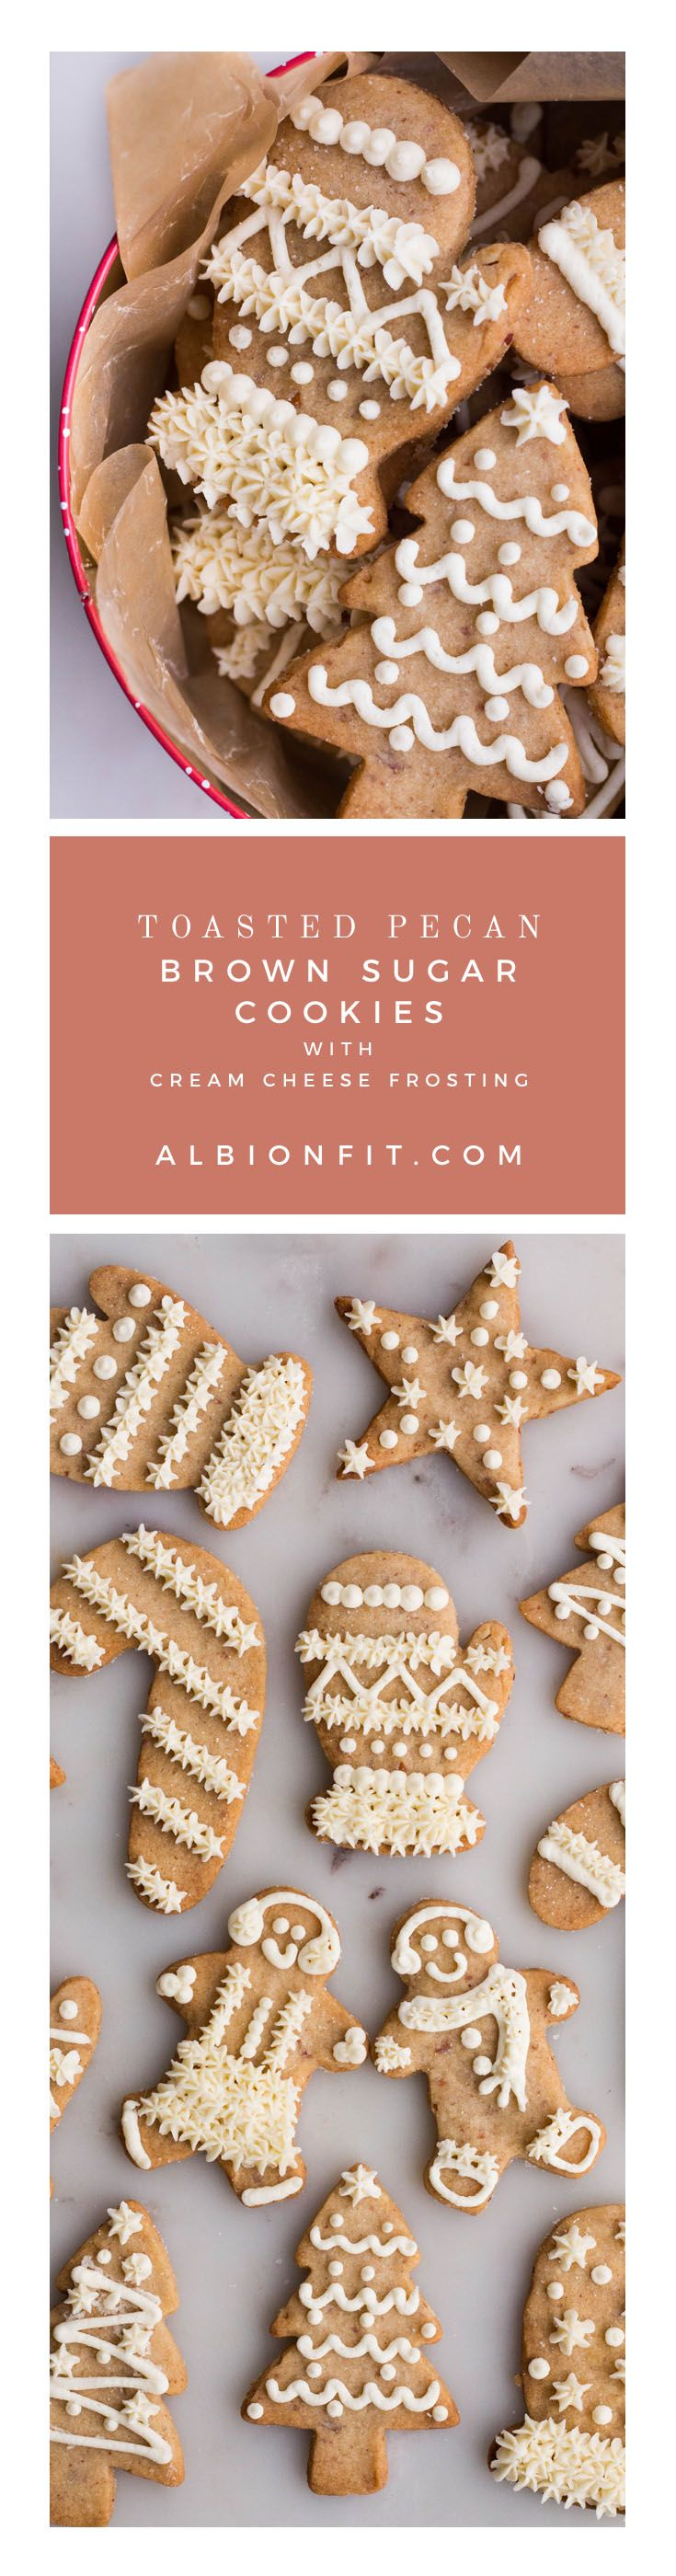 TASTY TUESDAY: Toasted Pecan Brown Sugar Cookies with Cream Cheese Frosting with @thesweetandsimplekitchen